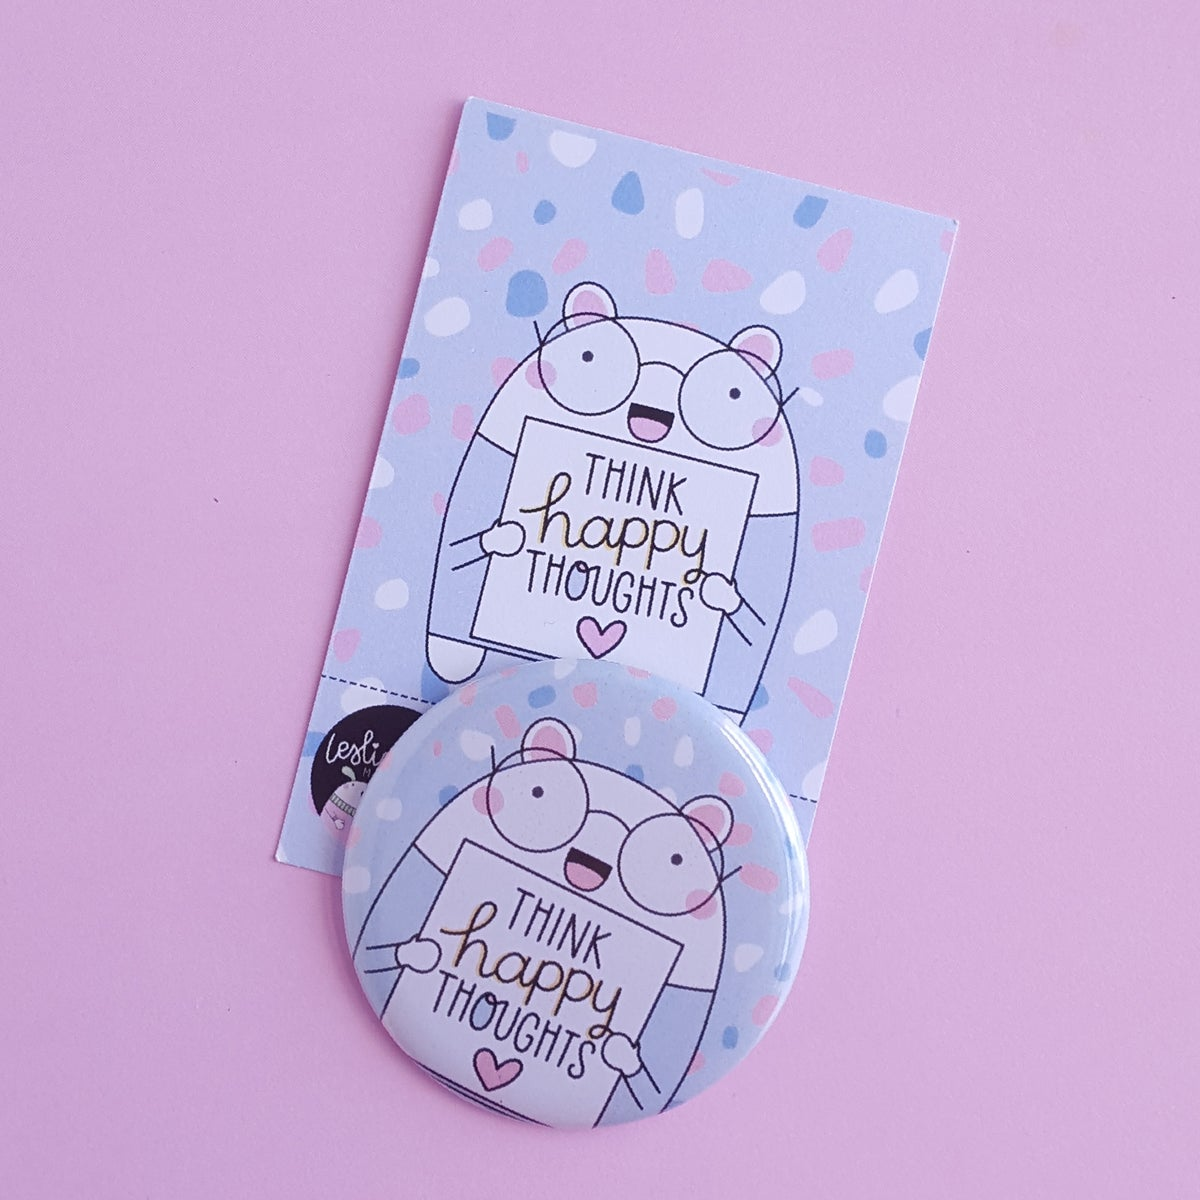 Think Happy Thoughts : Baby Blue Button Badge